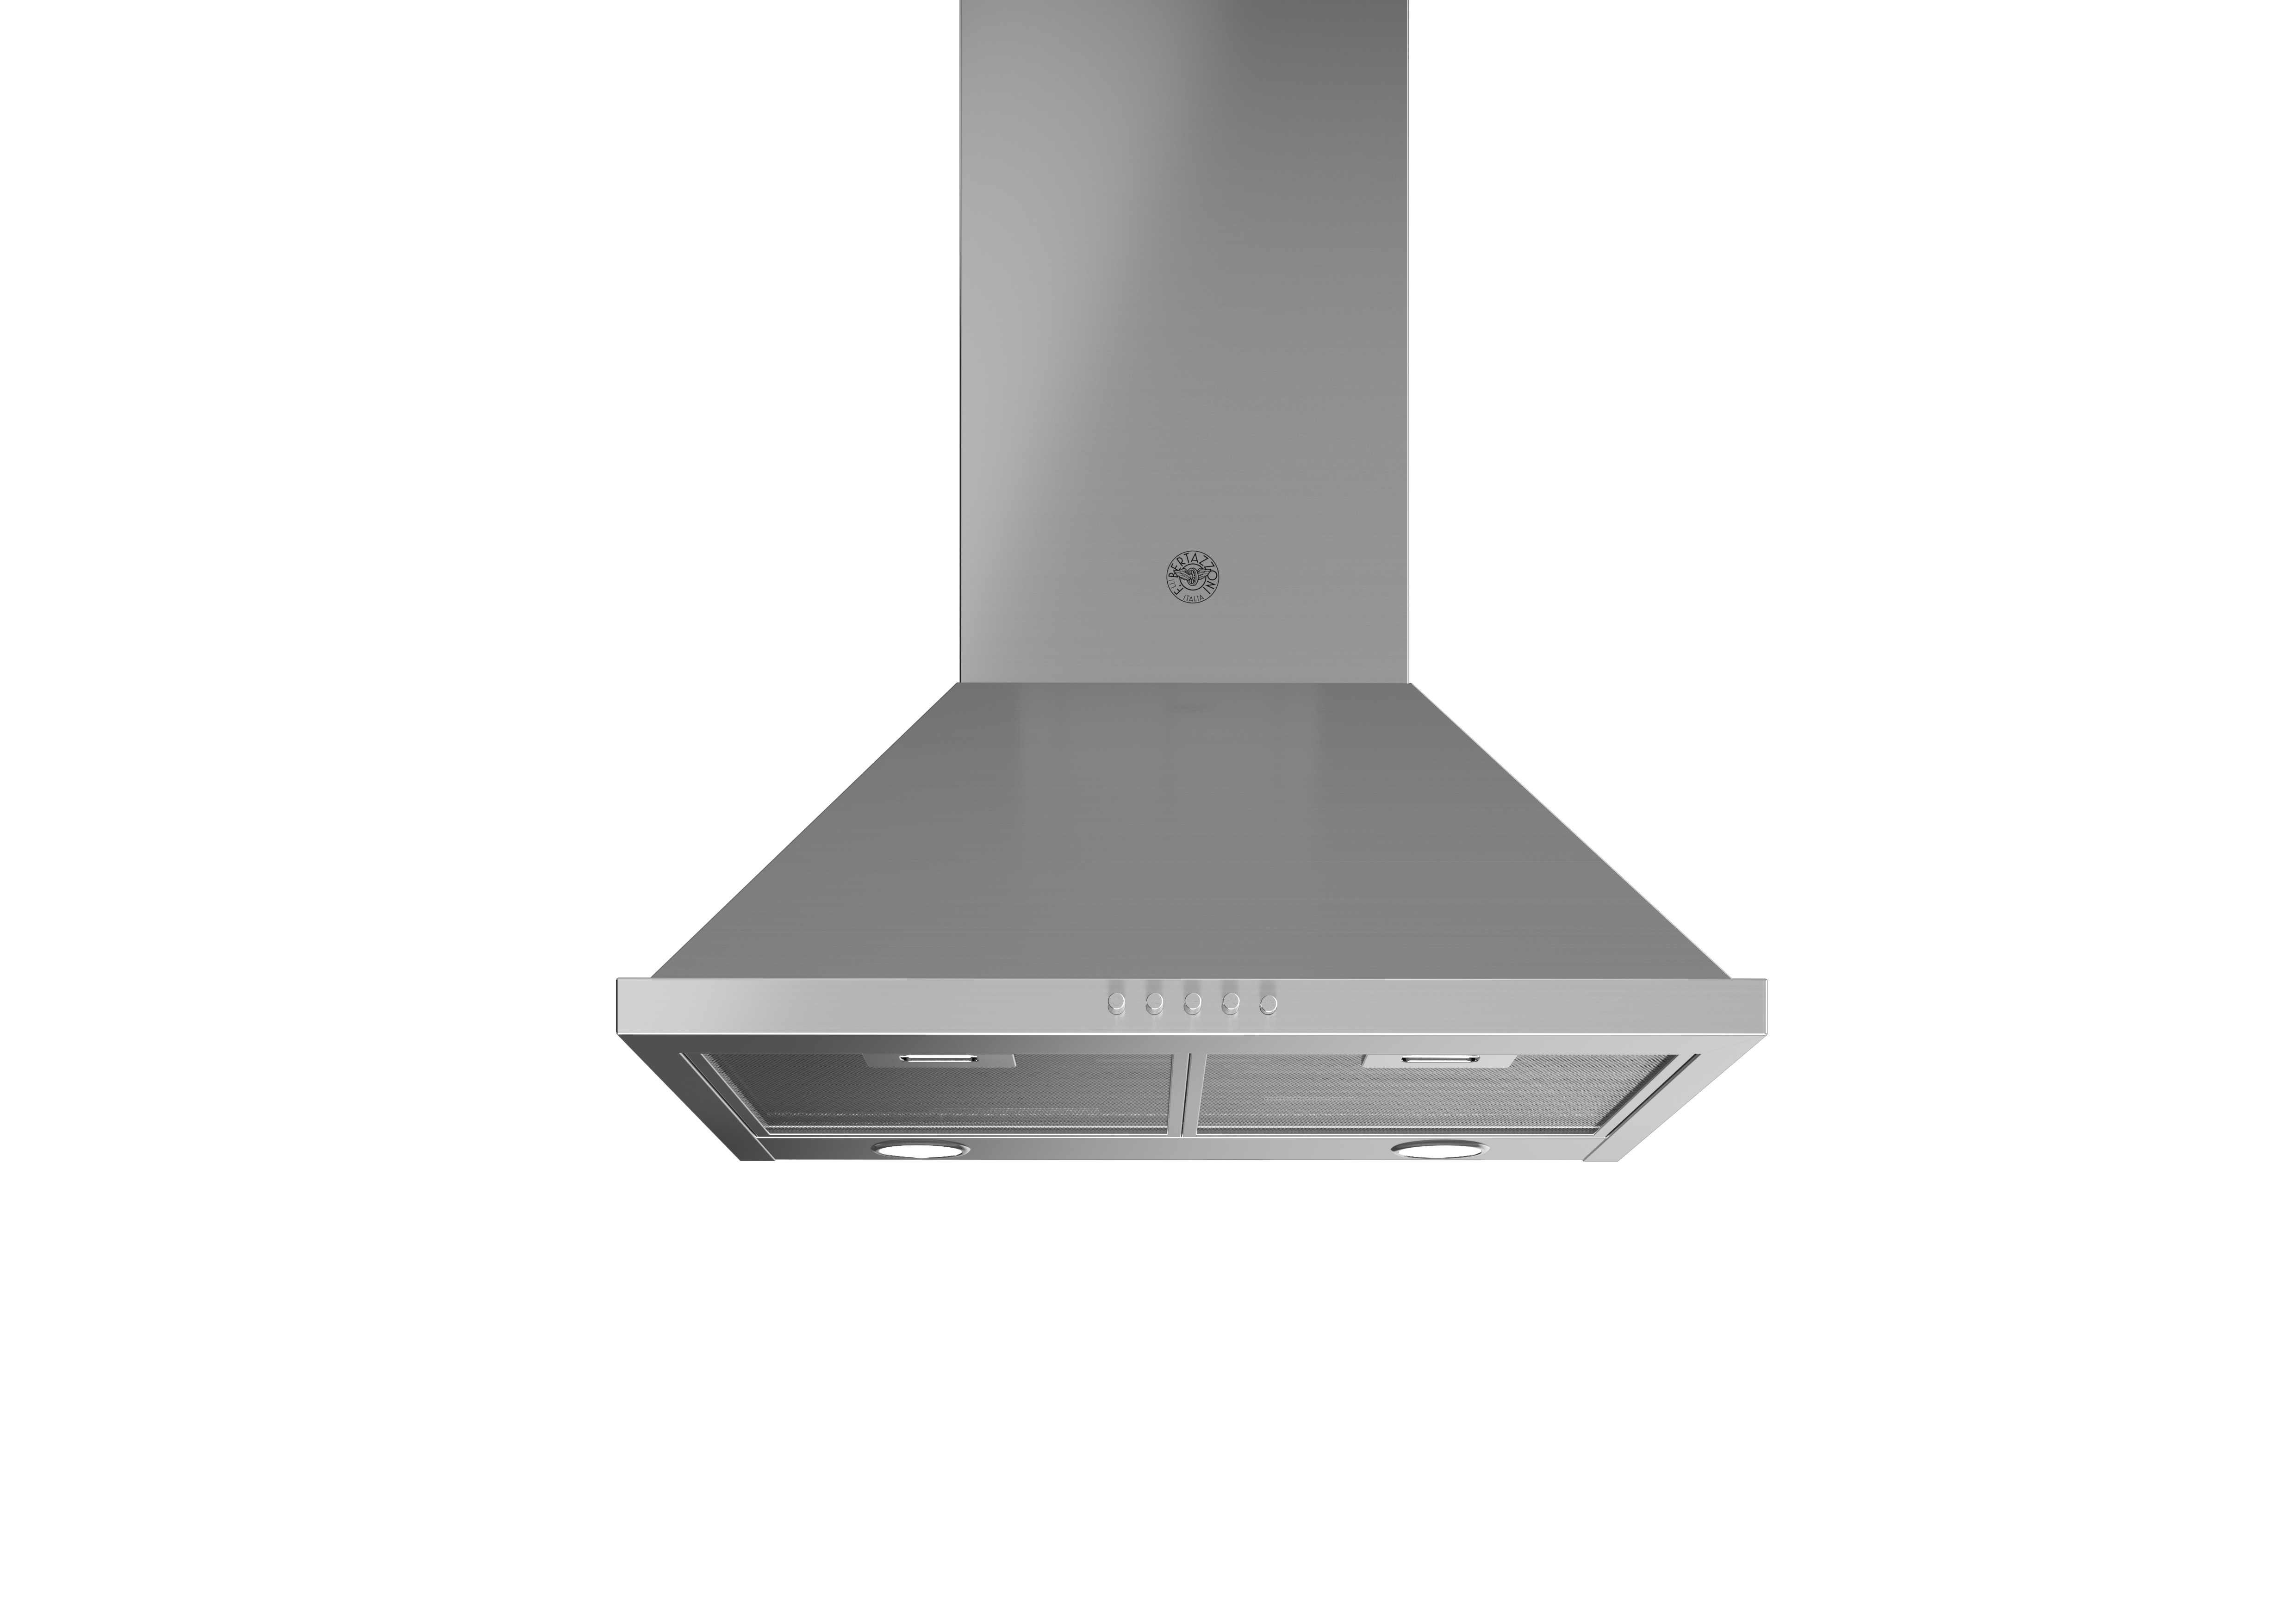 Bertazzoni Range hood KCH24XV in Stainless Steel color showcased by Corbeil Electro Store